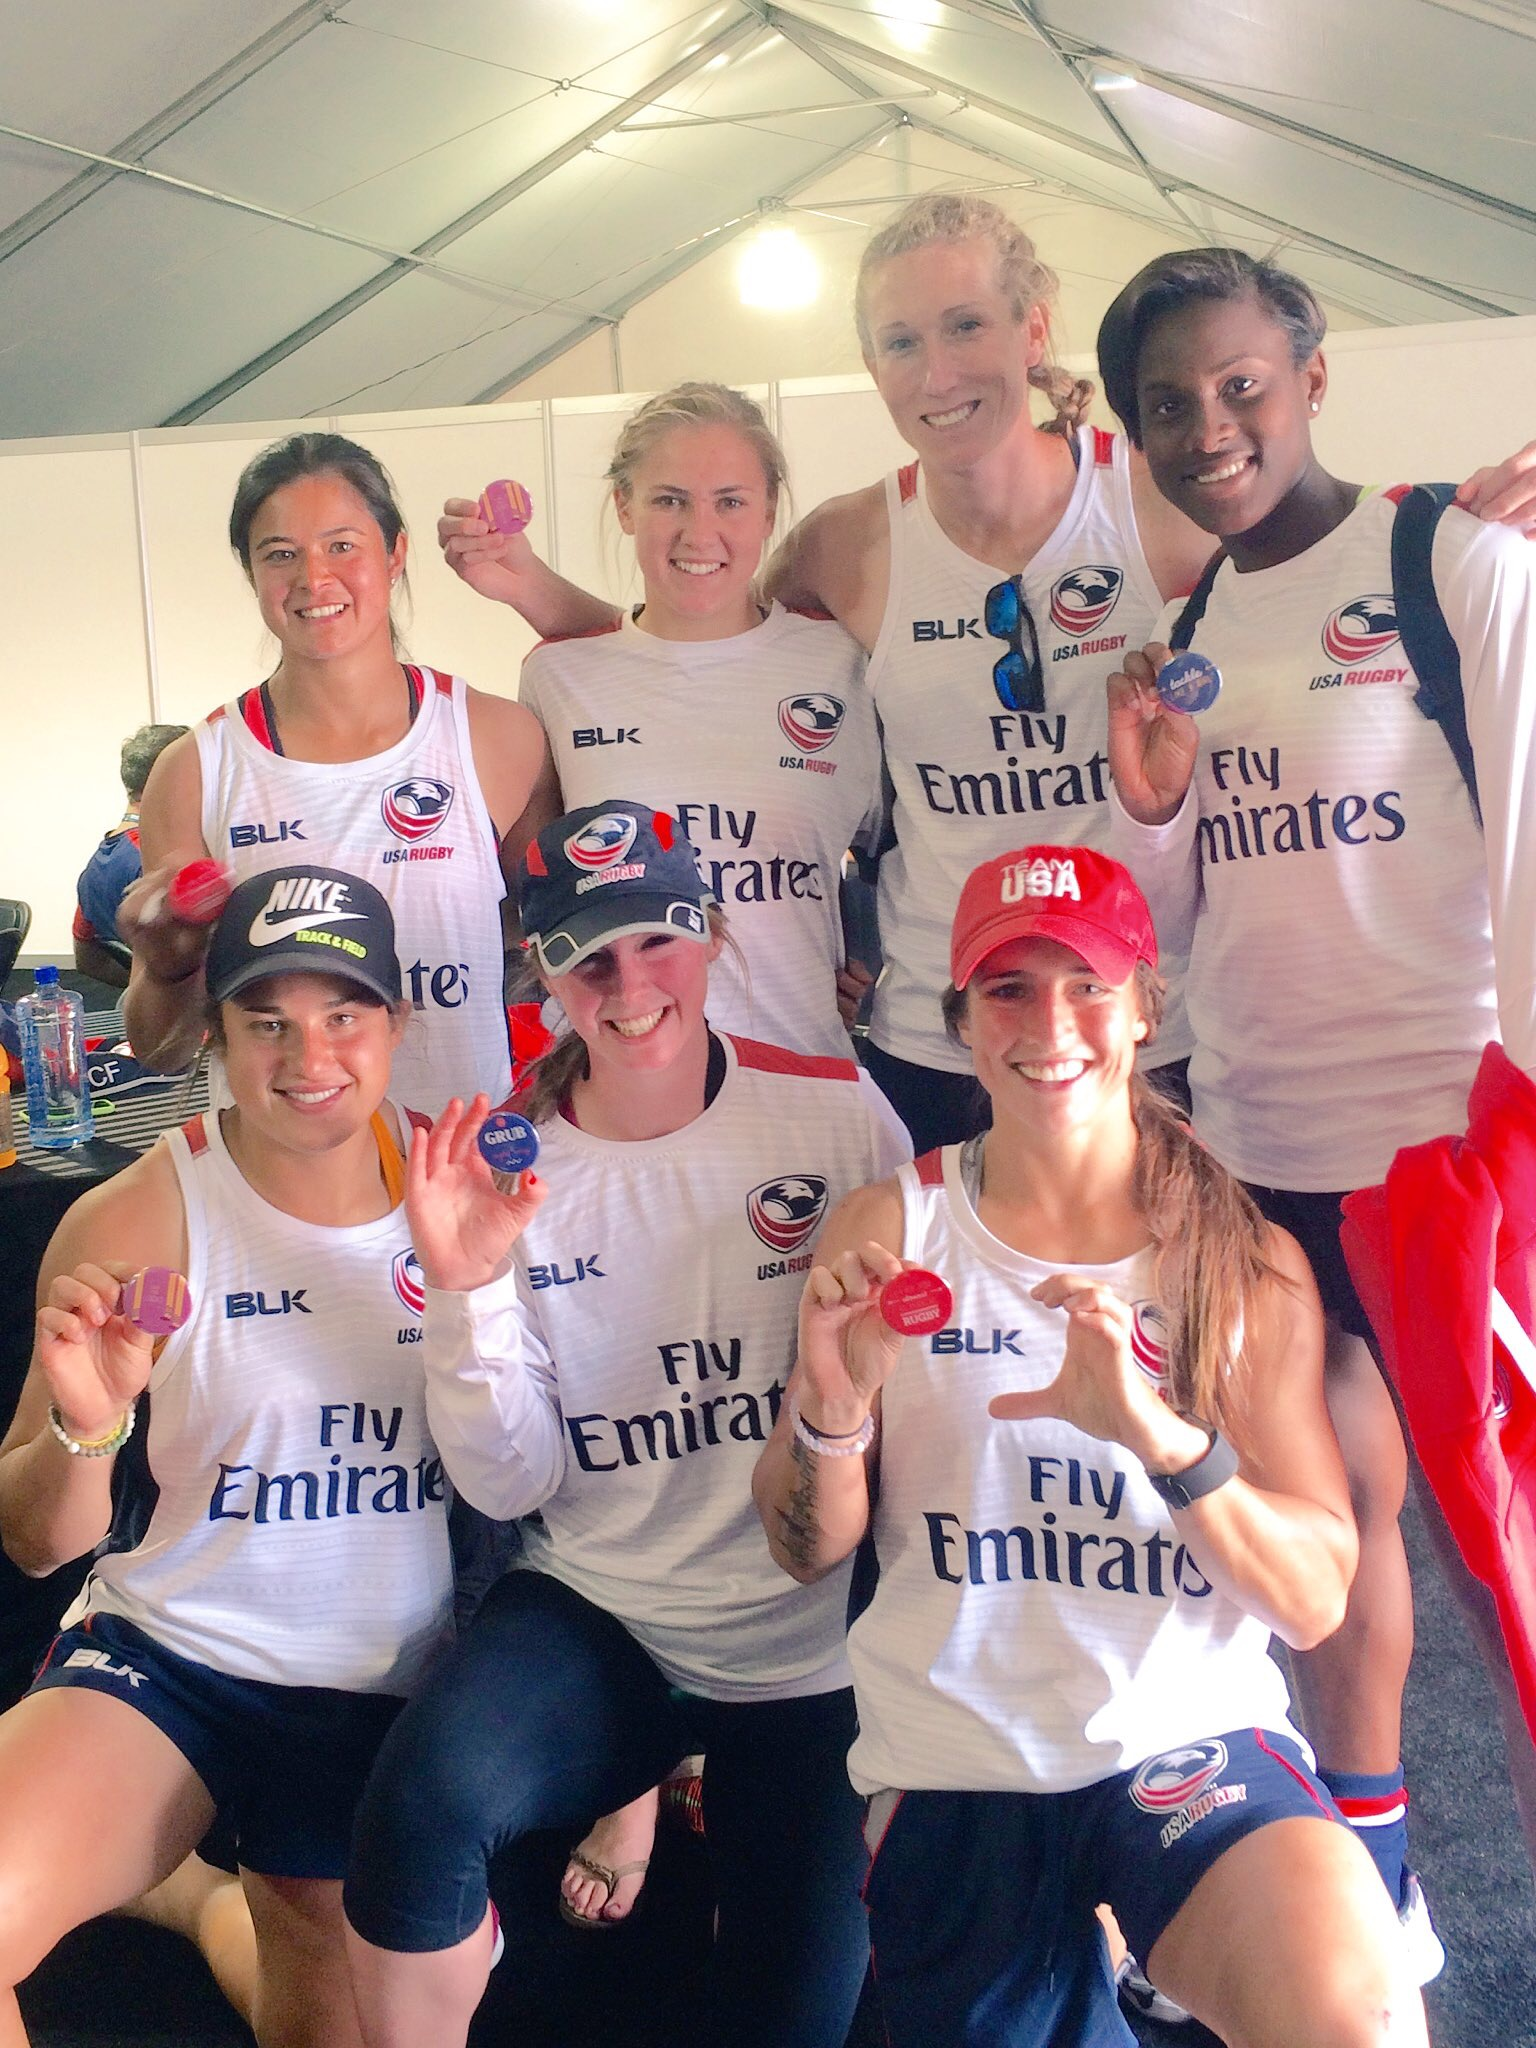 Our USA Women's 7s Eagles at Vegas 7s (Irene Gardner, Richelle Stephens, Carmen Farmer, Naya Tapper, Nicole Heavirland, Meya Bizer, Ryan Carlyle)